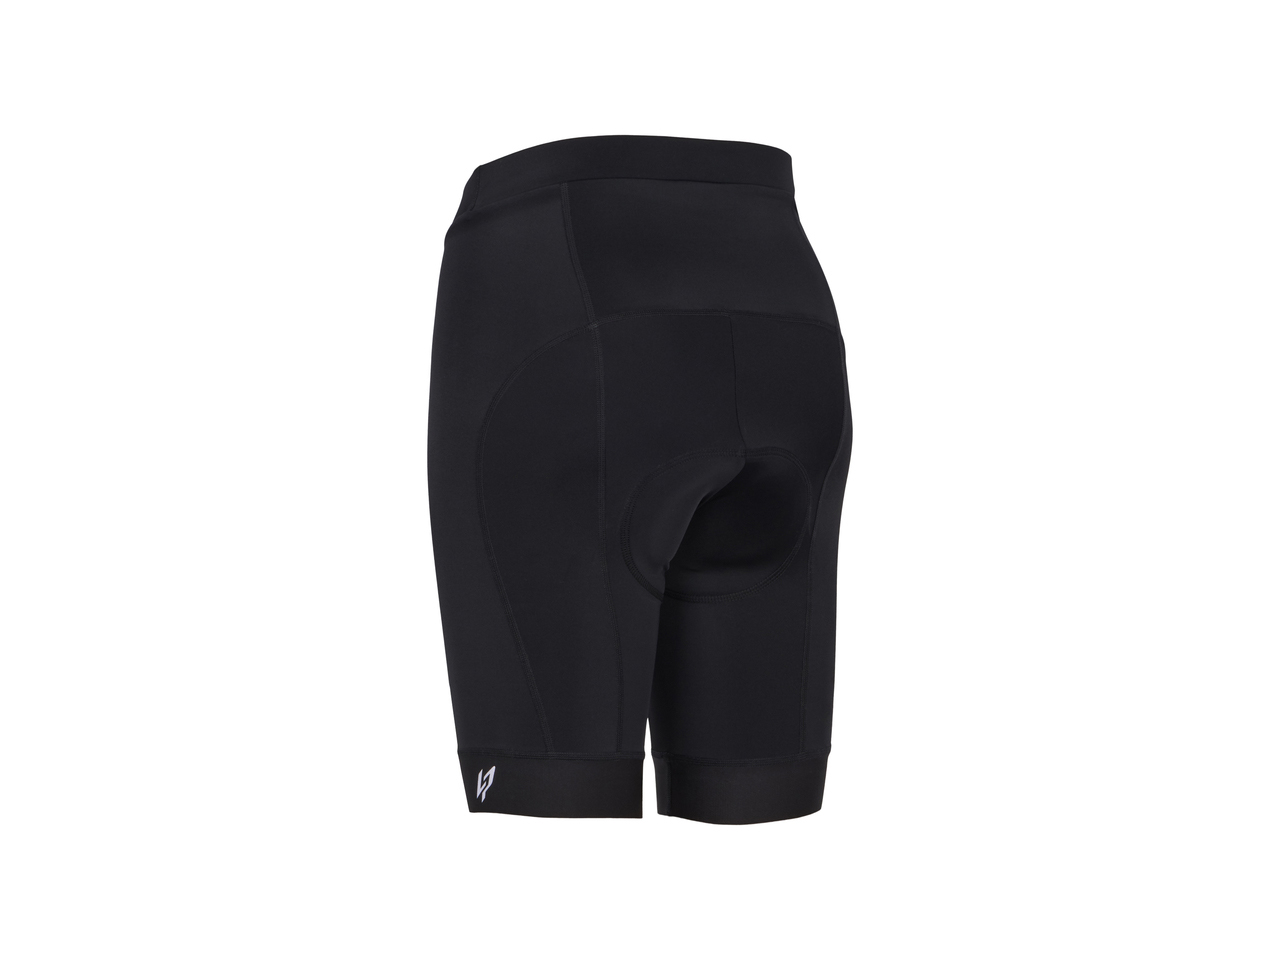 Lapierre Ultimate SL Madeleine Cycling Bib Shorts for women - Back